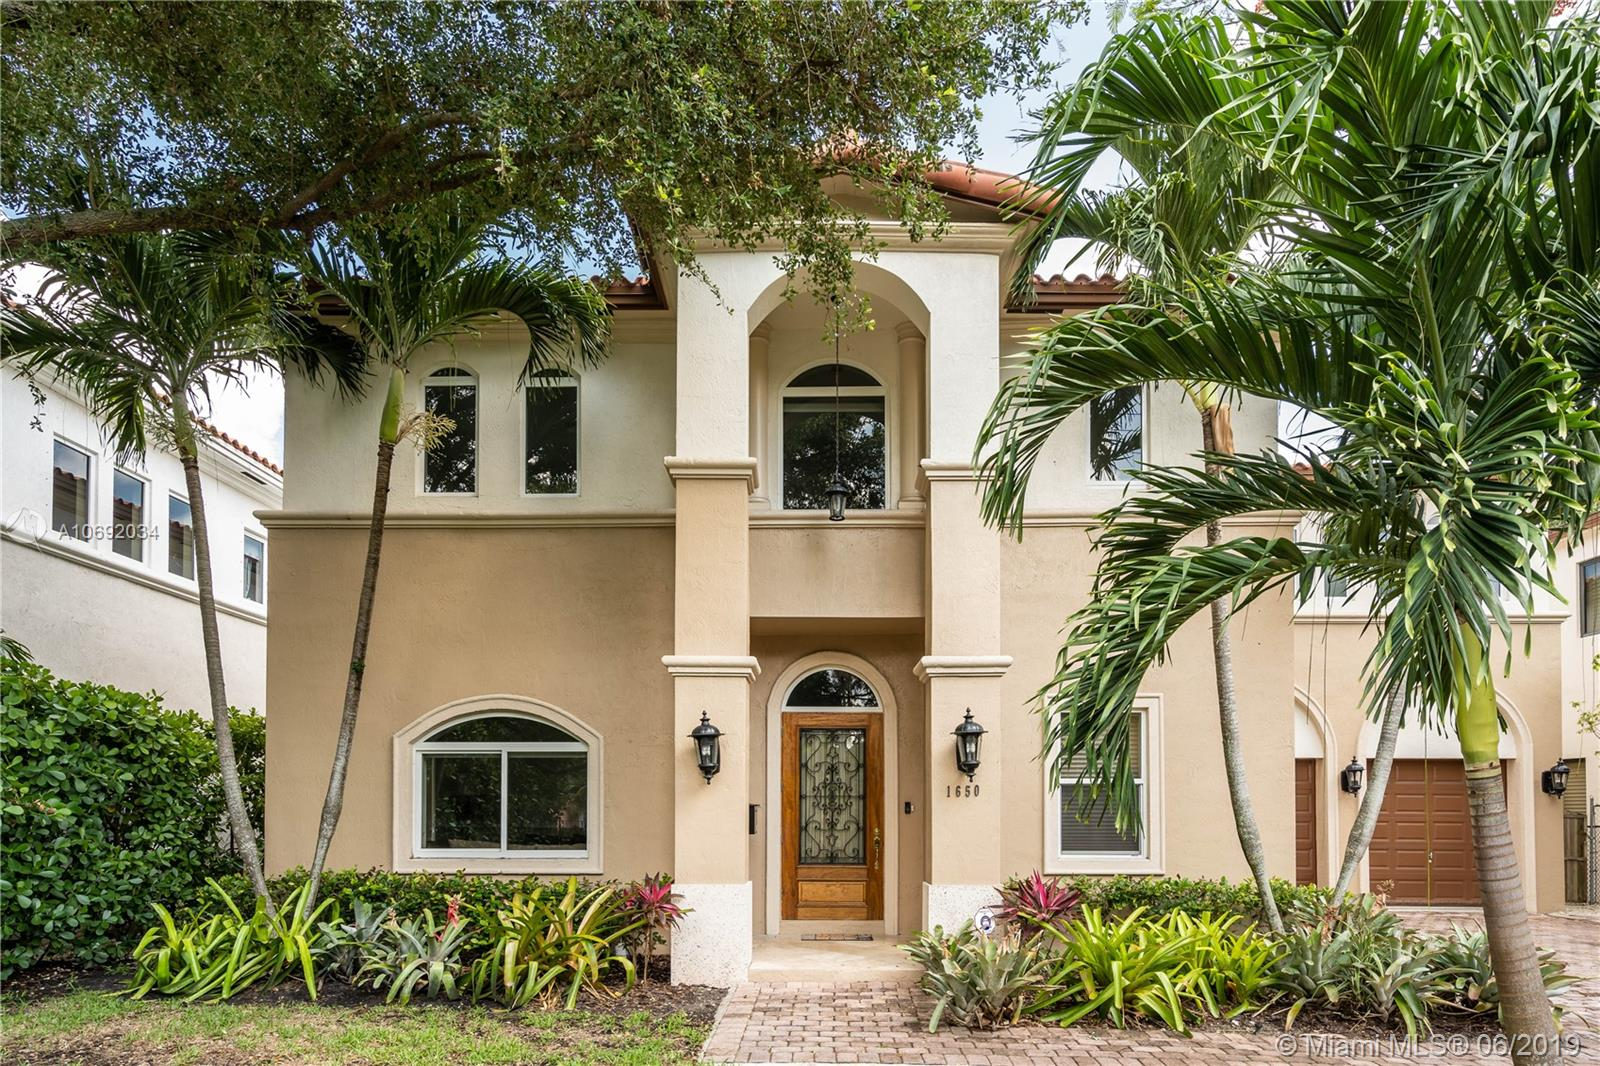 1650 Micanopy Ave, Miami, Florida 33133